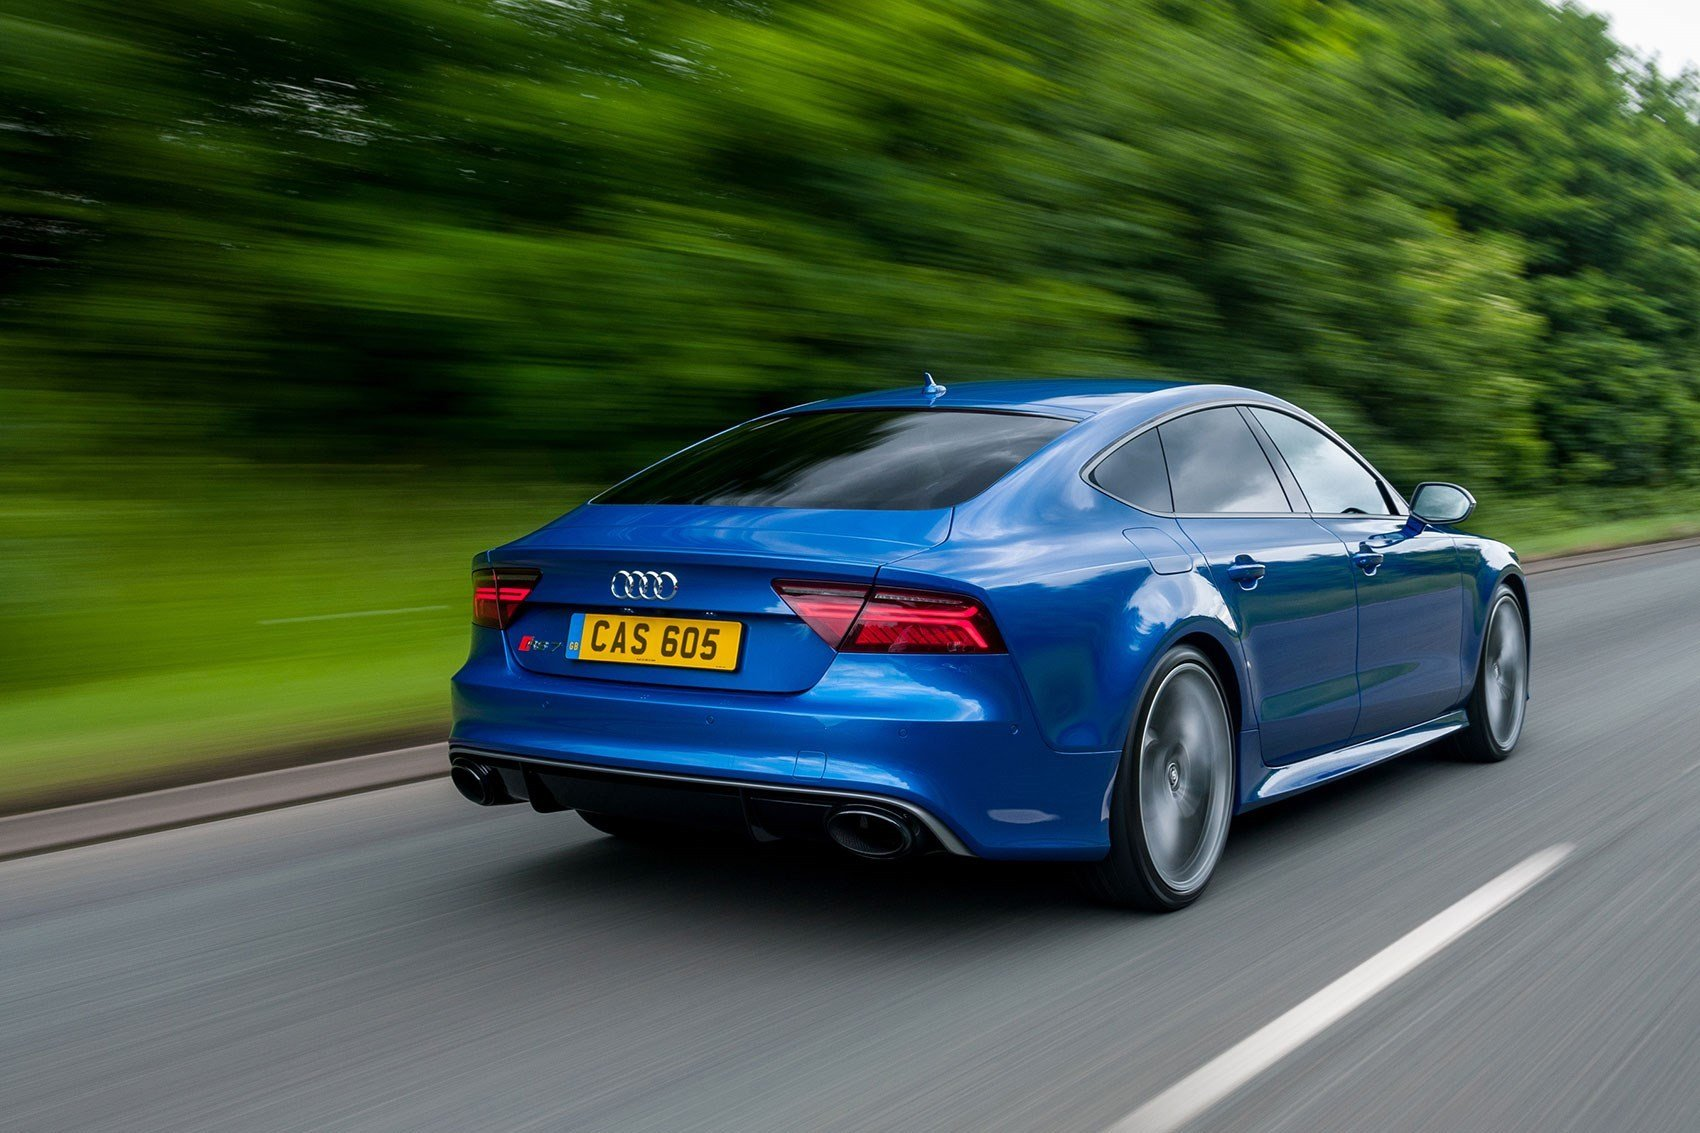 New Audi Rs7 Sportback Performance 2016 Review Car Magazine On This Month